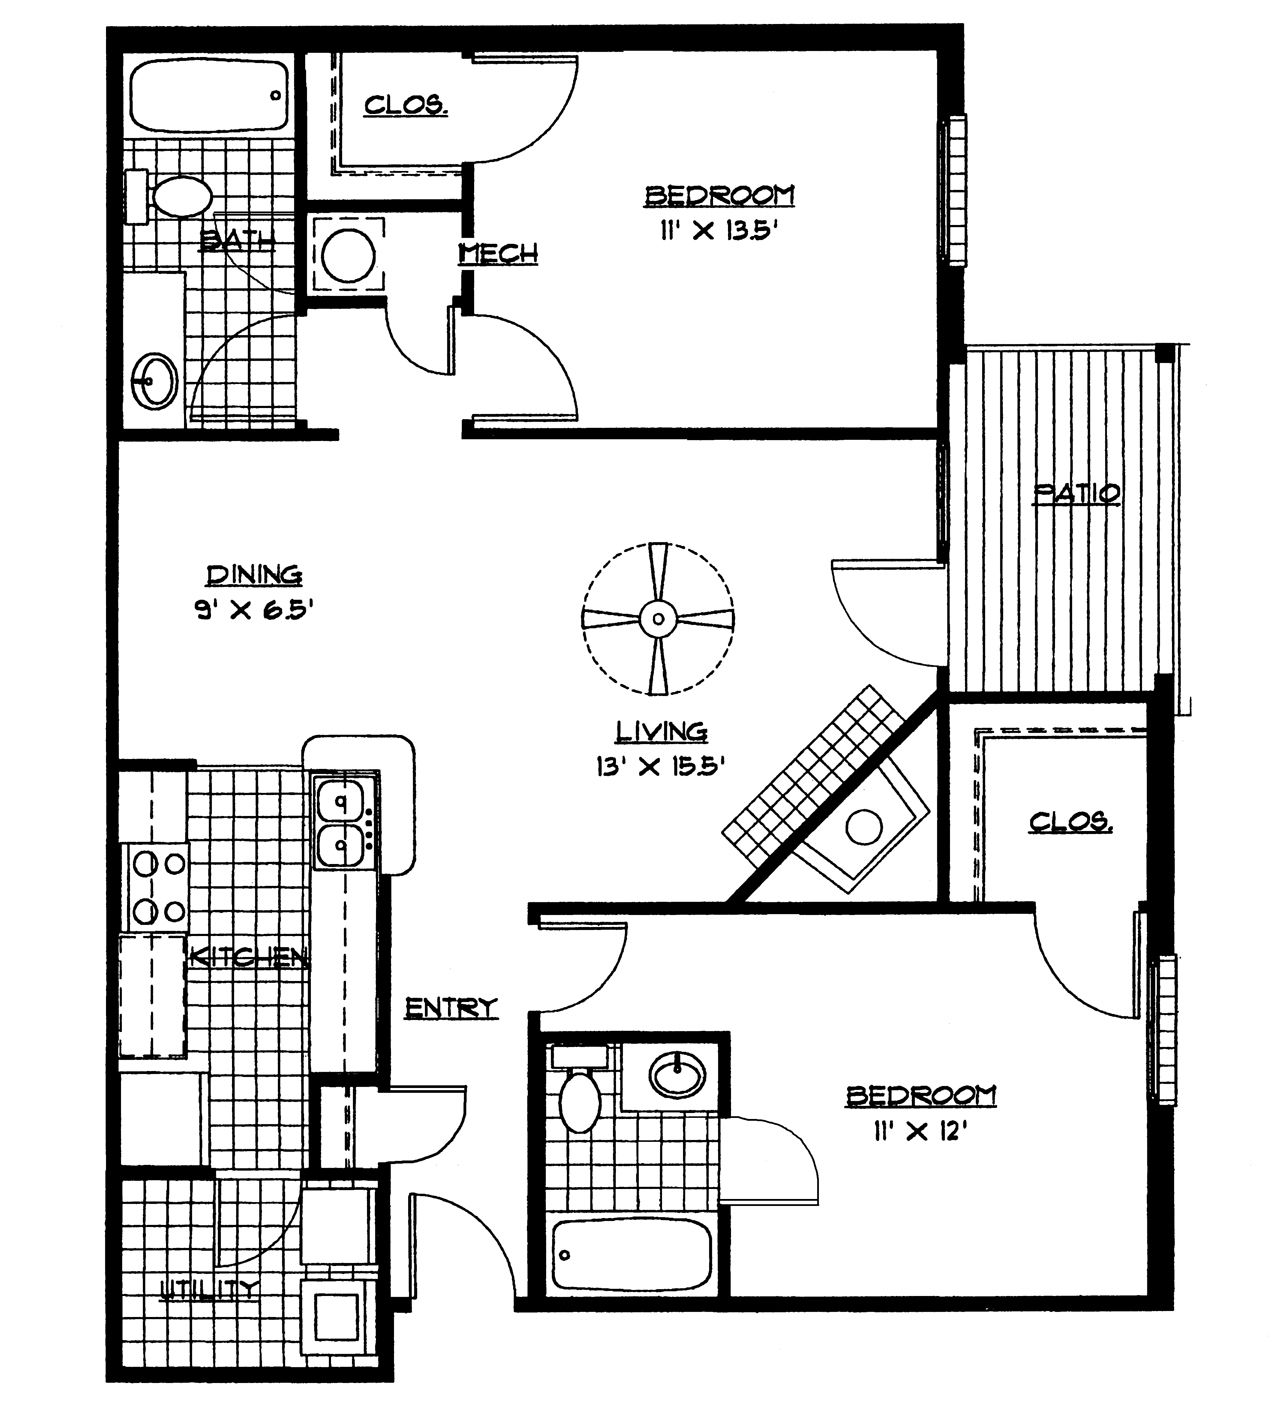 Small house floor plans 2 bedrooms bedroom floor plan for Floor plan 2 bedroom